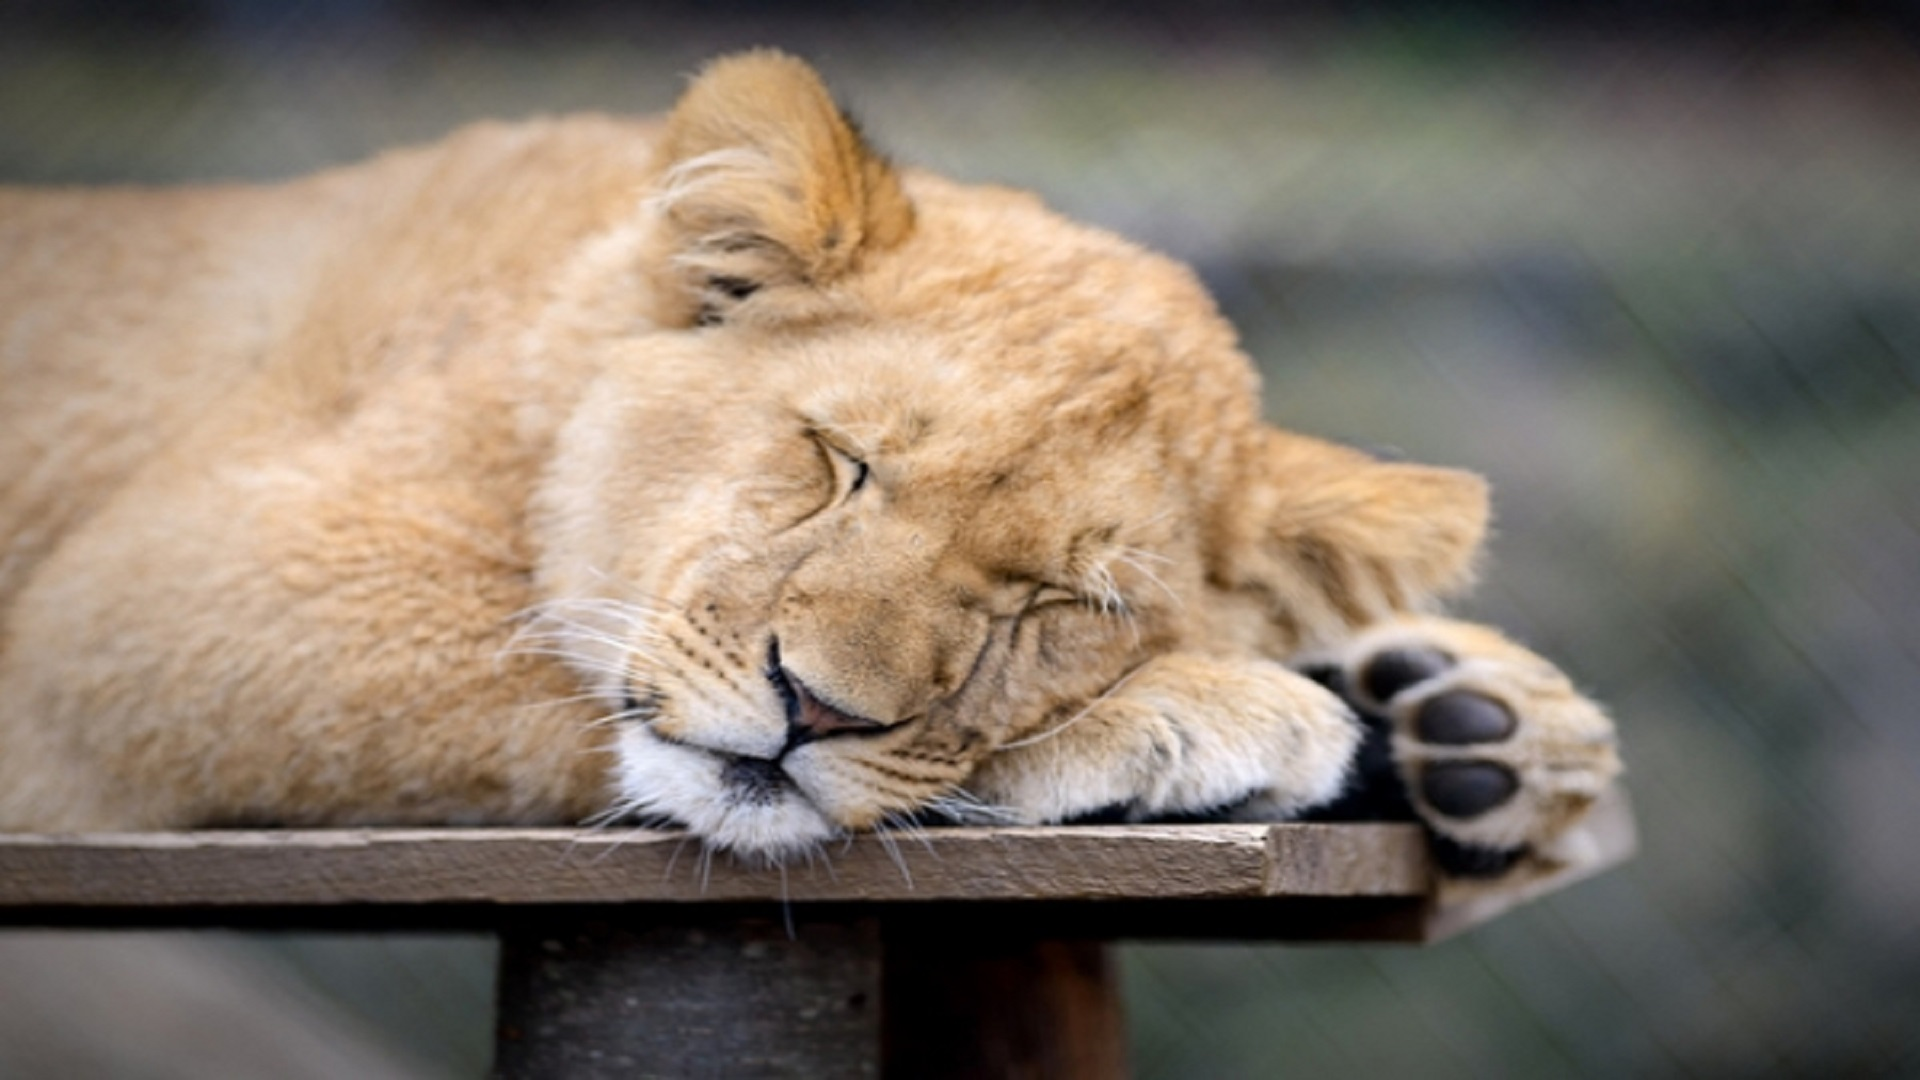 Free 3d Hd Wallpapers For Mobile Sleeping Lion Africa Hd Free Wallpapers Hd Wallpaper